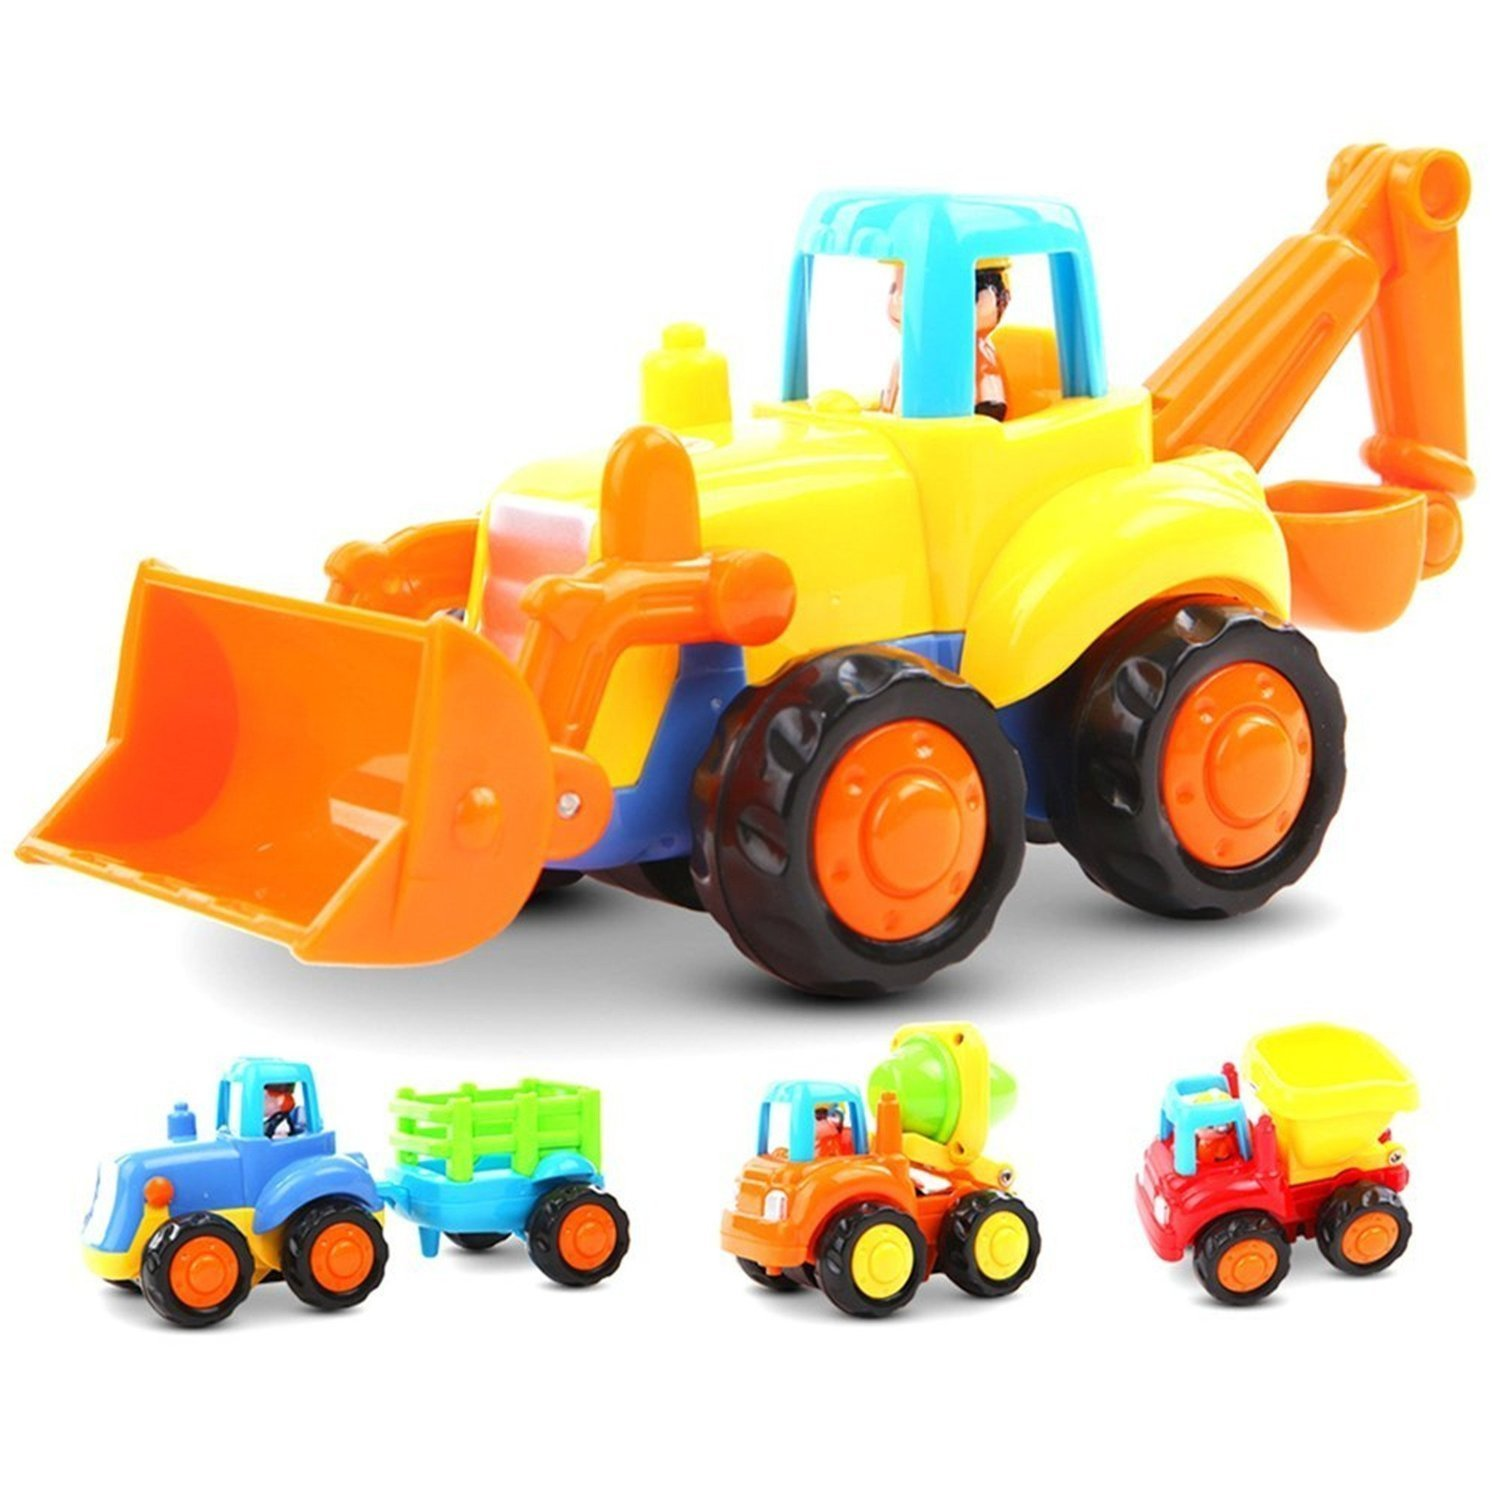 Friction Powered Cars Push and Go Car Construction Vehicles Toys Set of 4 Tractor,Bulldozer,Cement Mixer Truck,Dumper Push Back Cartoon Play for 1 2 3 Years Old Boys Toddlers Kids Gift